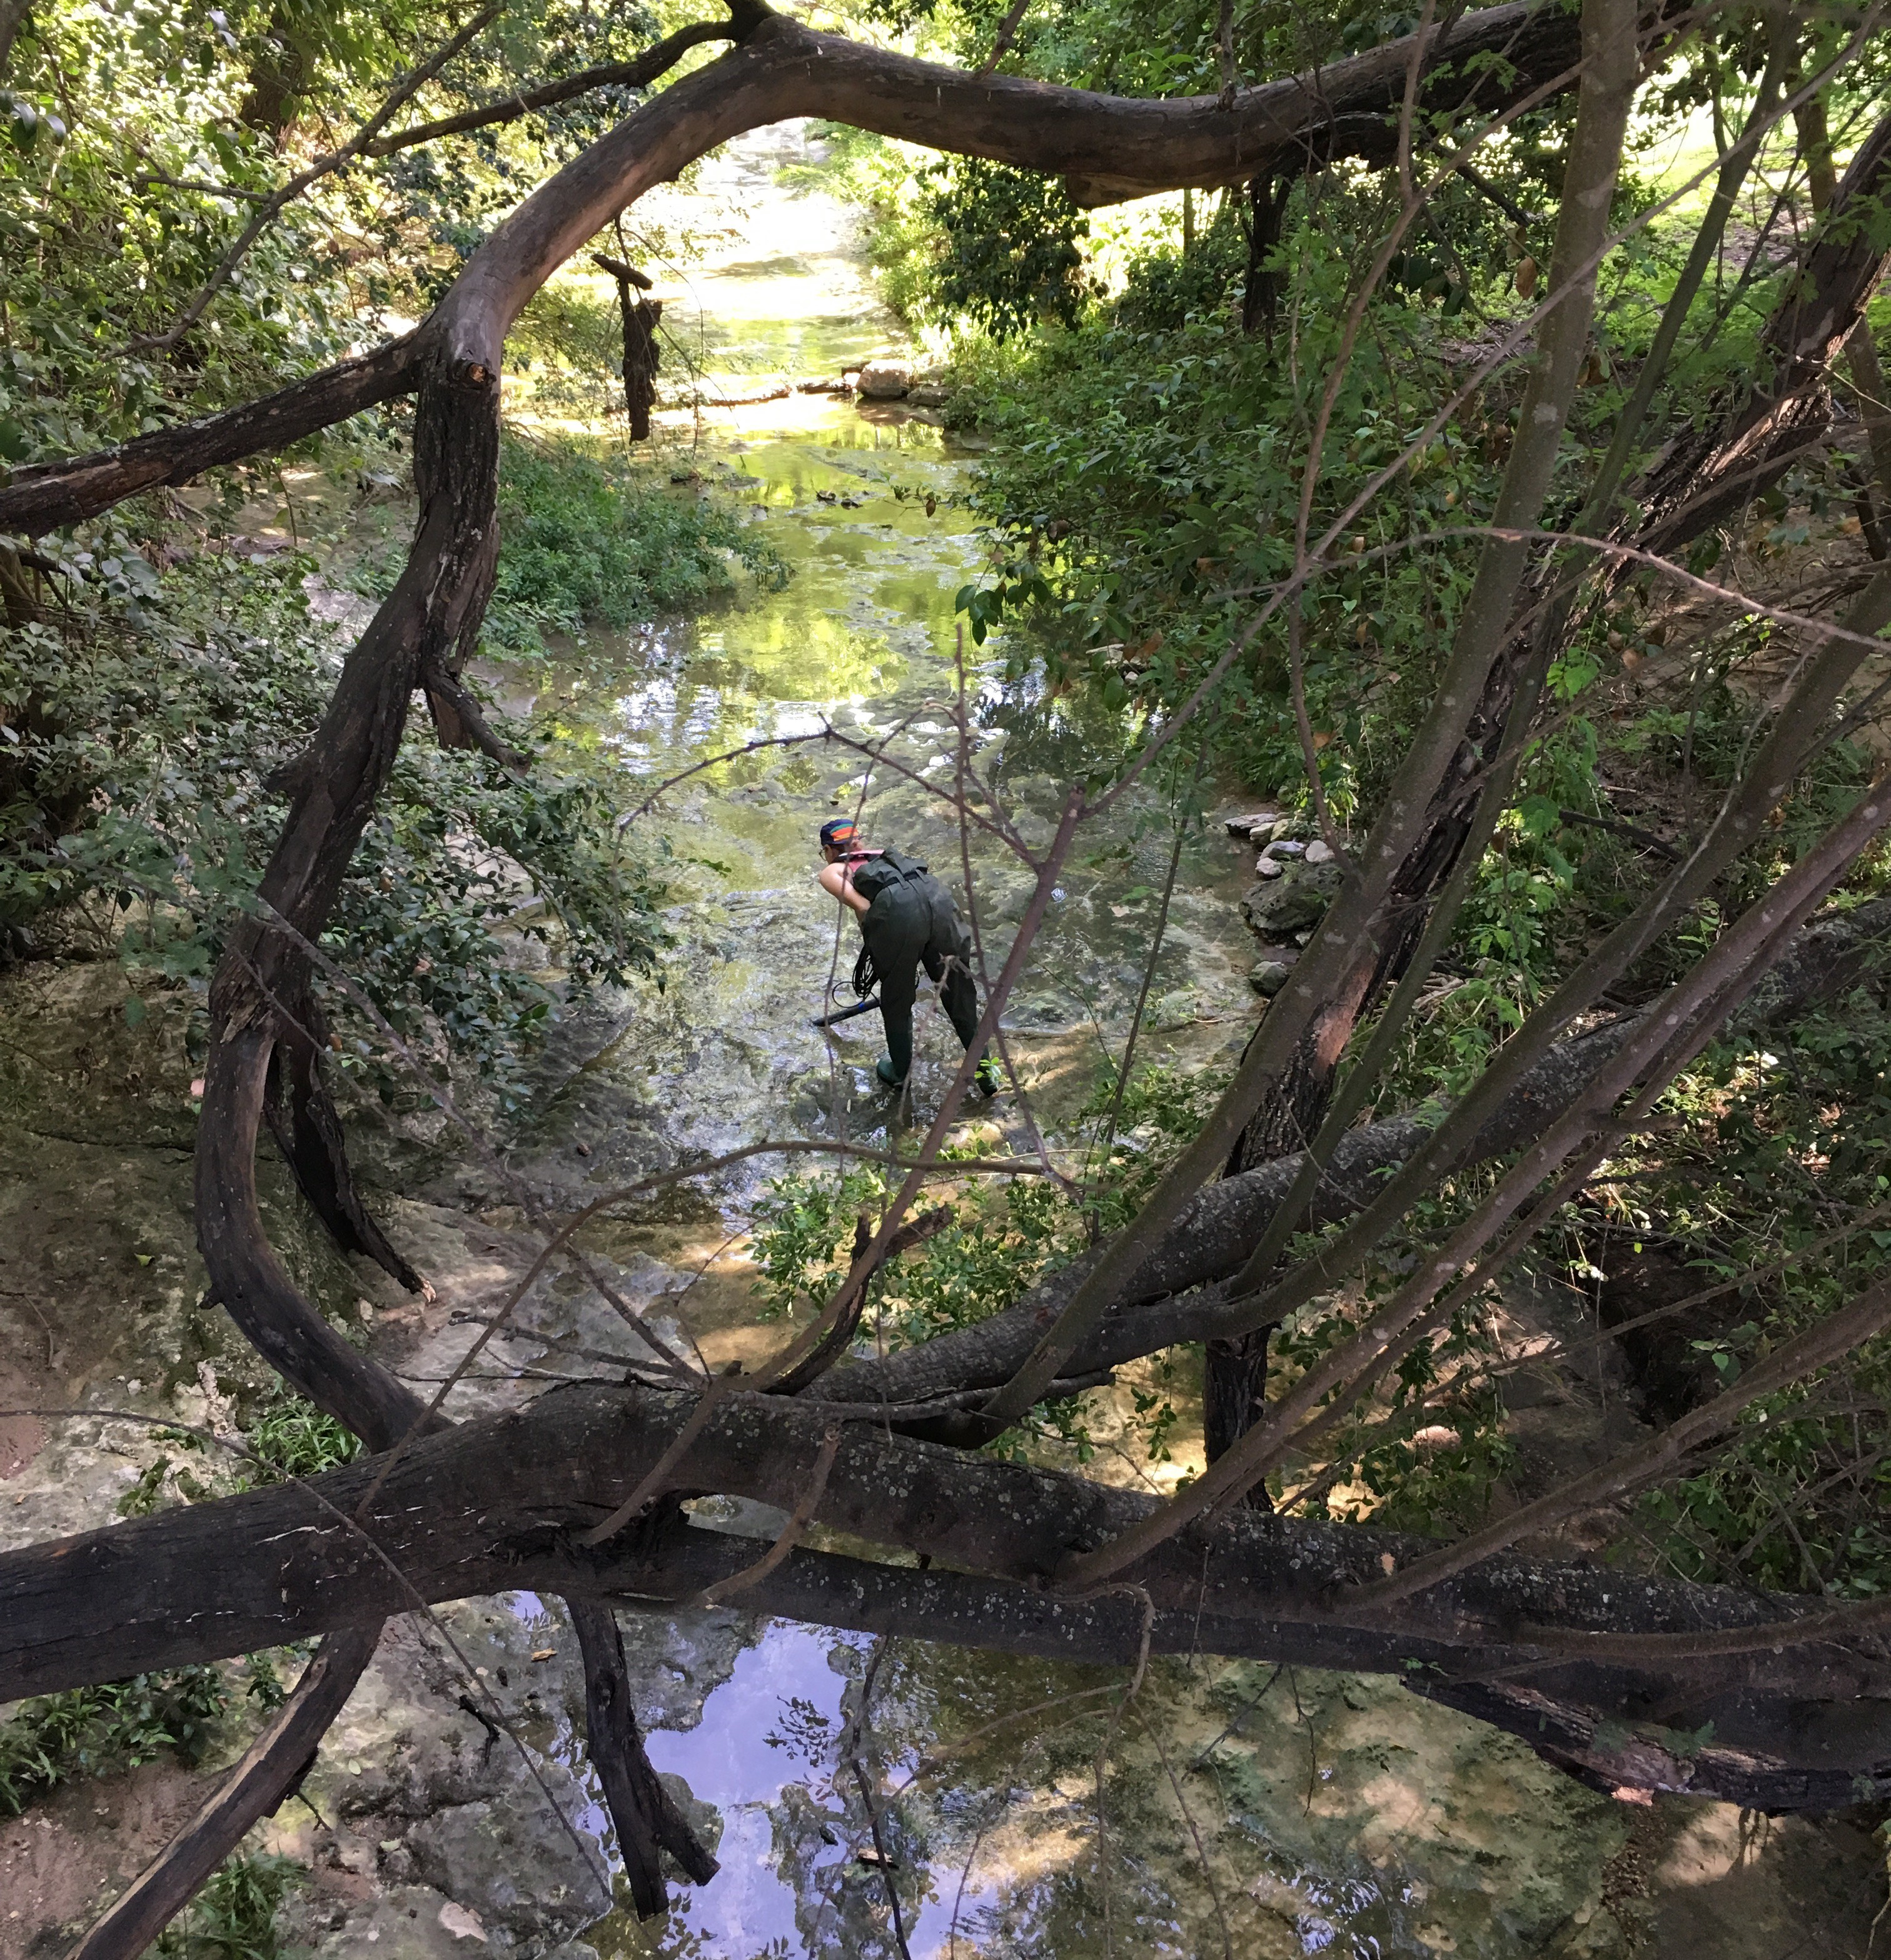 A student researcher at UT stands in part of Bull Creek in Austin, Texas, collecting water samples.